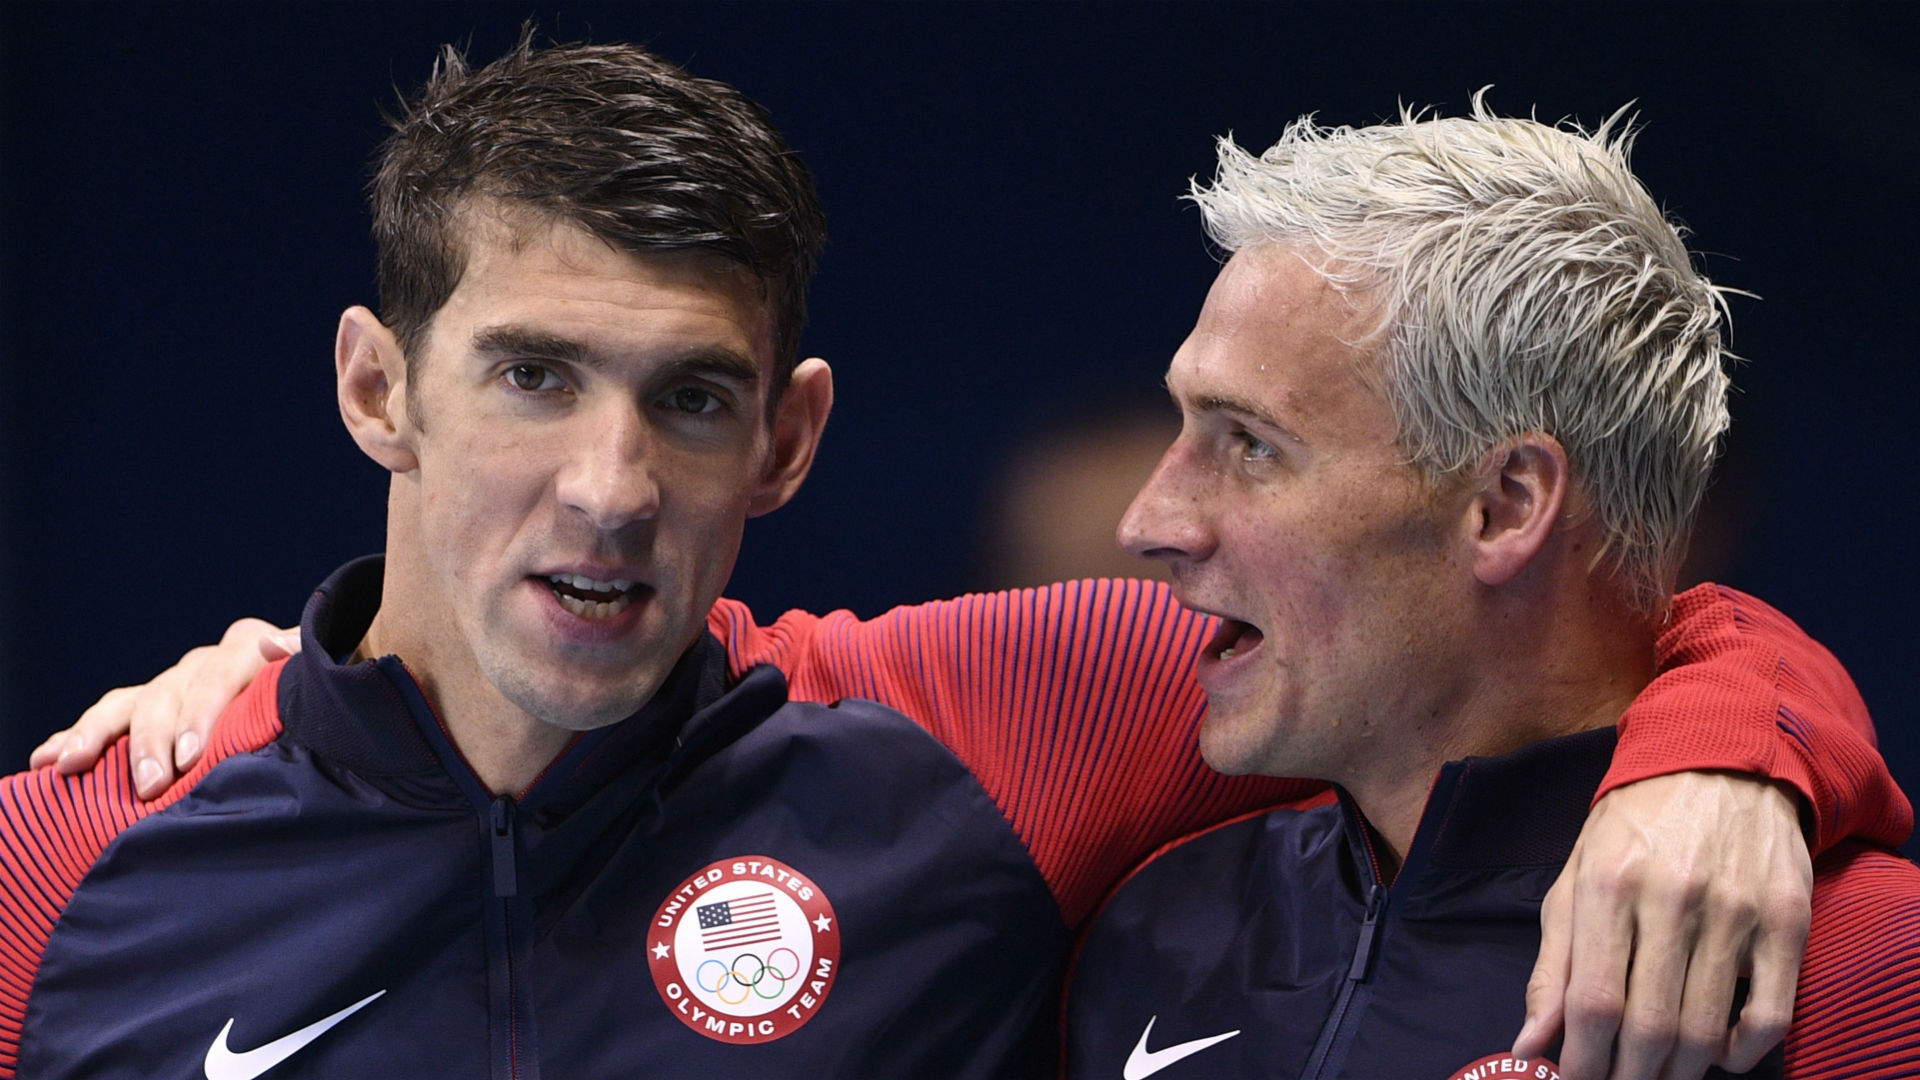 High drama in Olympic pool as Phelps makes history again